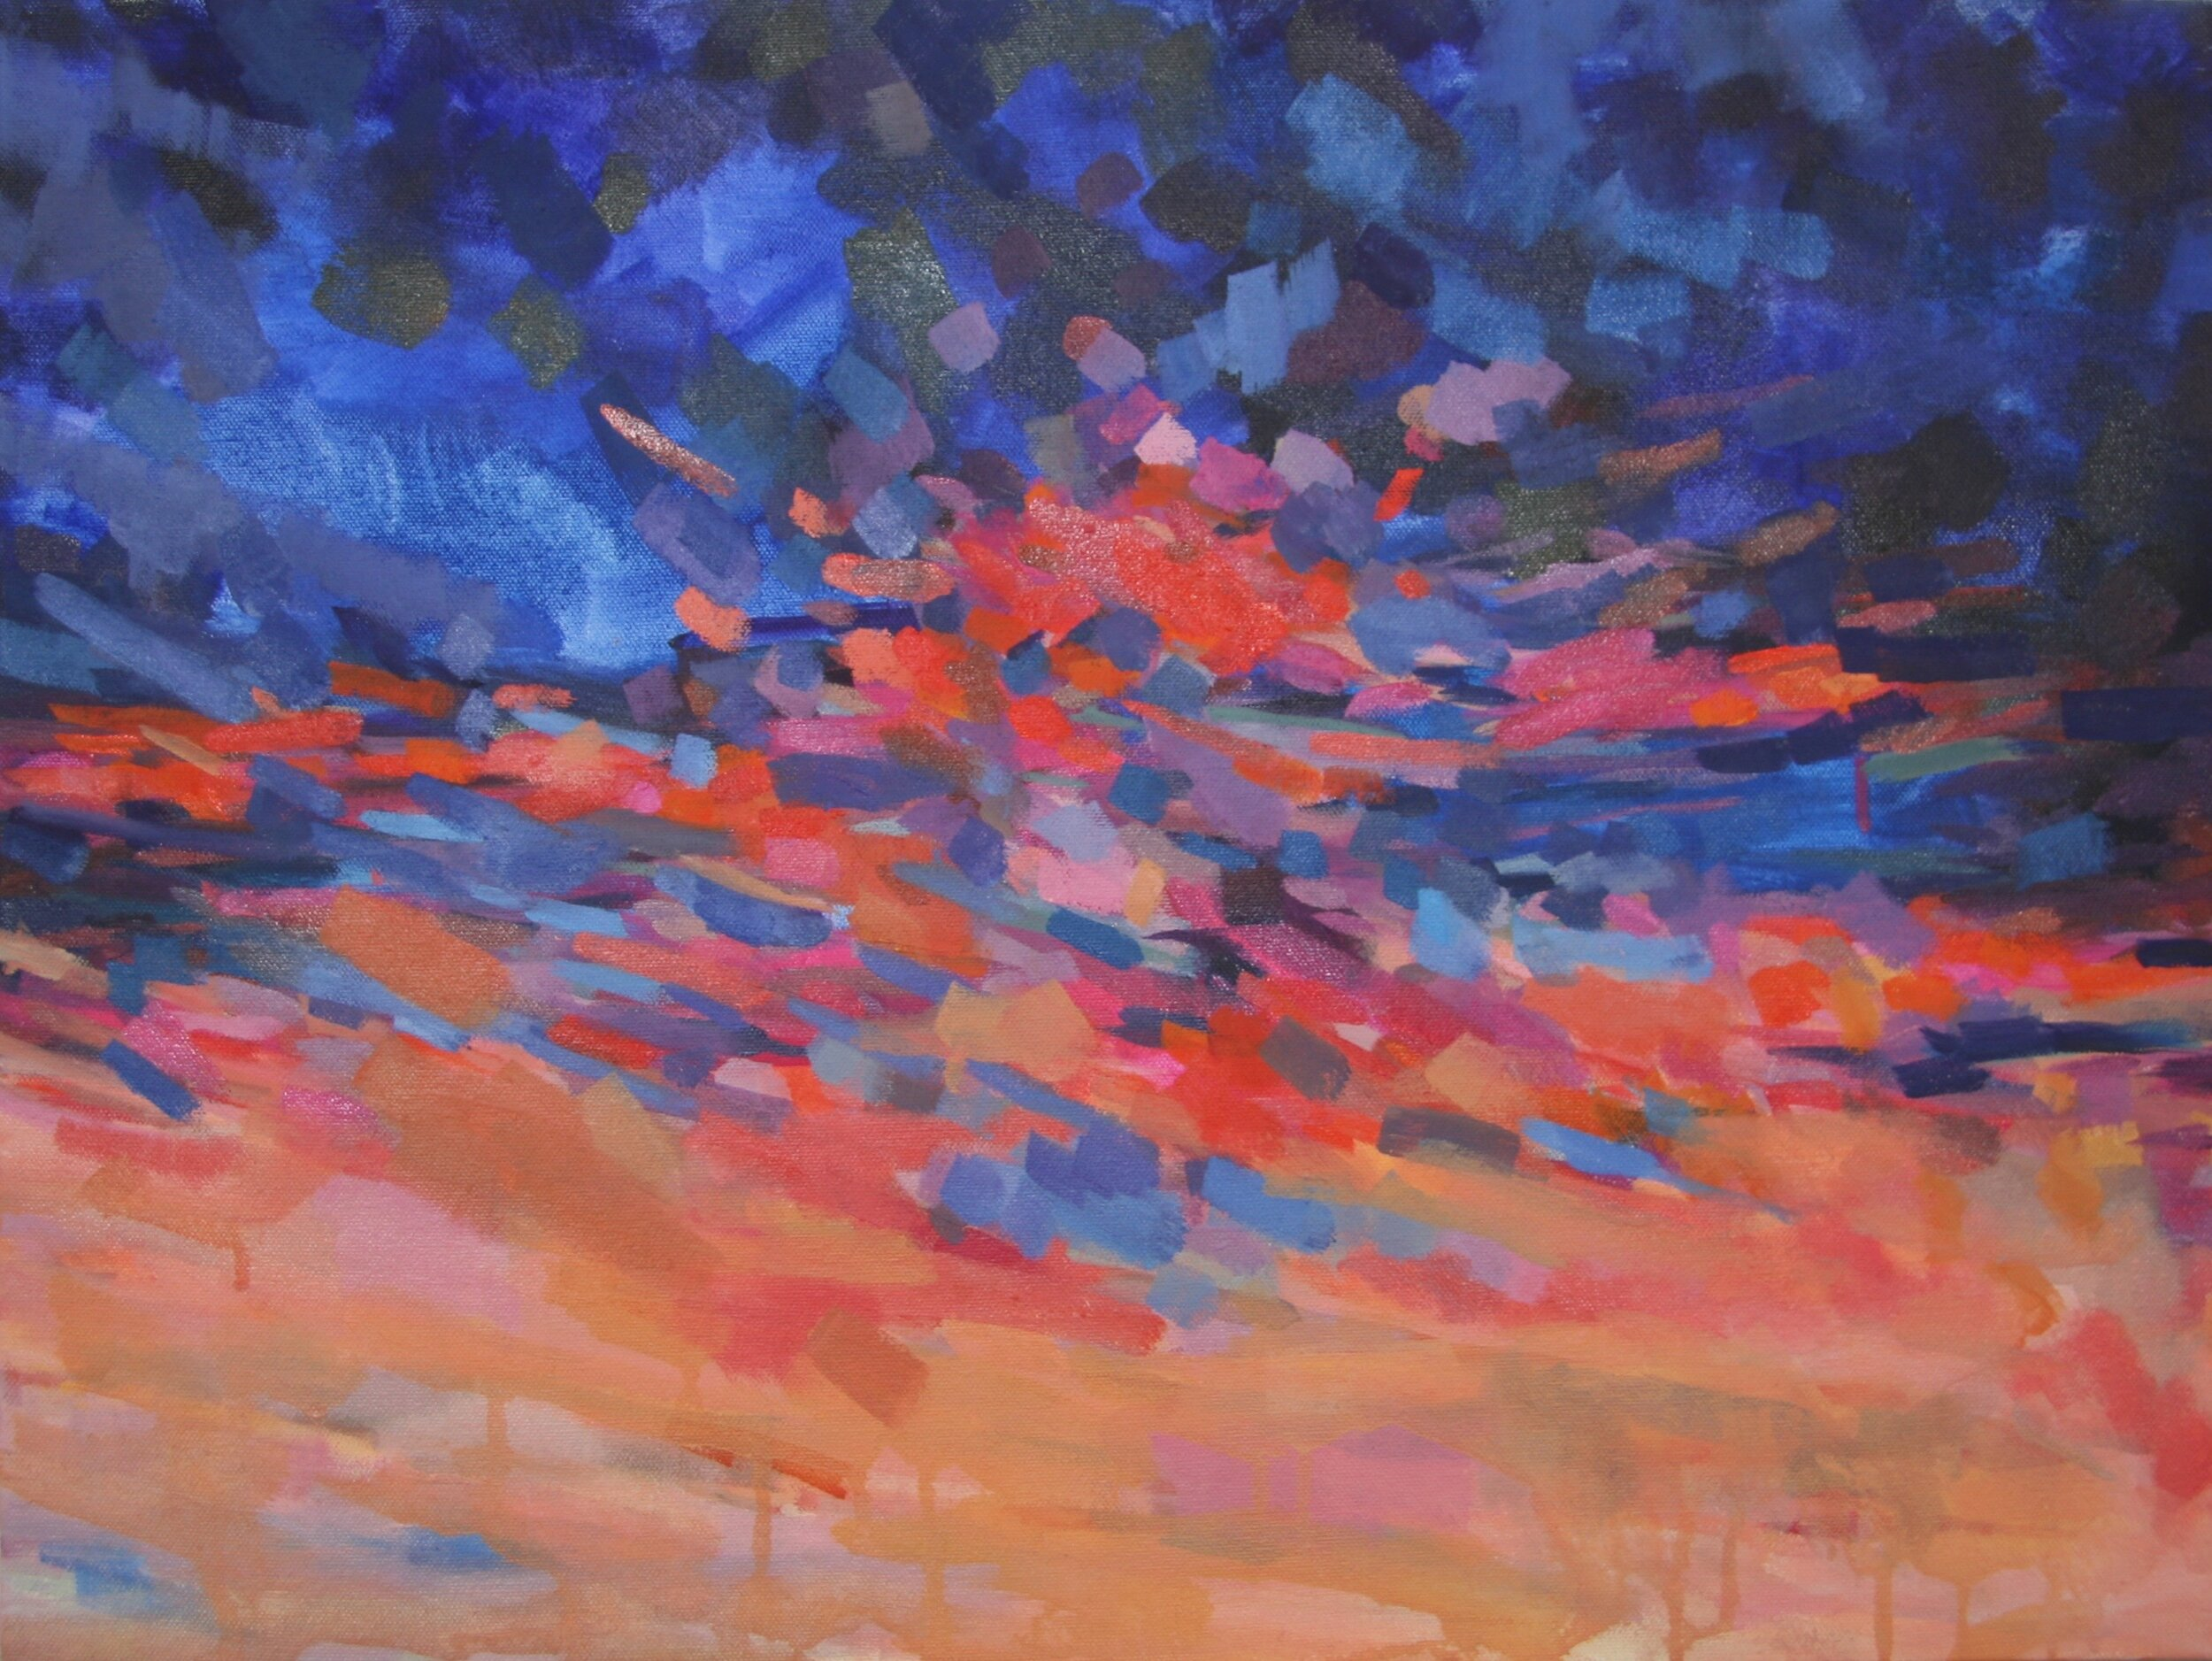 """'Ablaze'  2015  24"""" x 18""""  water soluble oil on canvas  sold"""